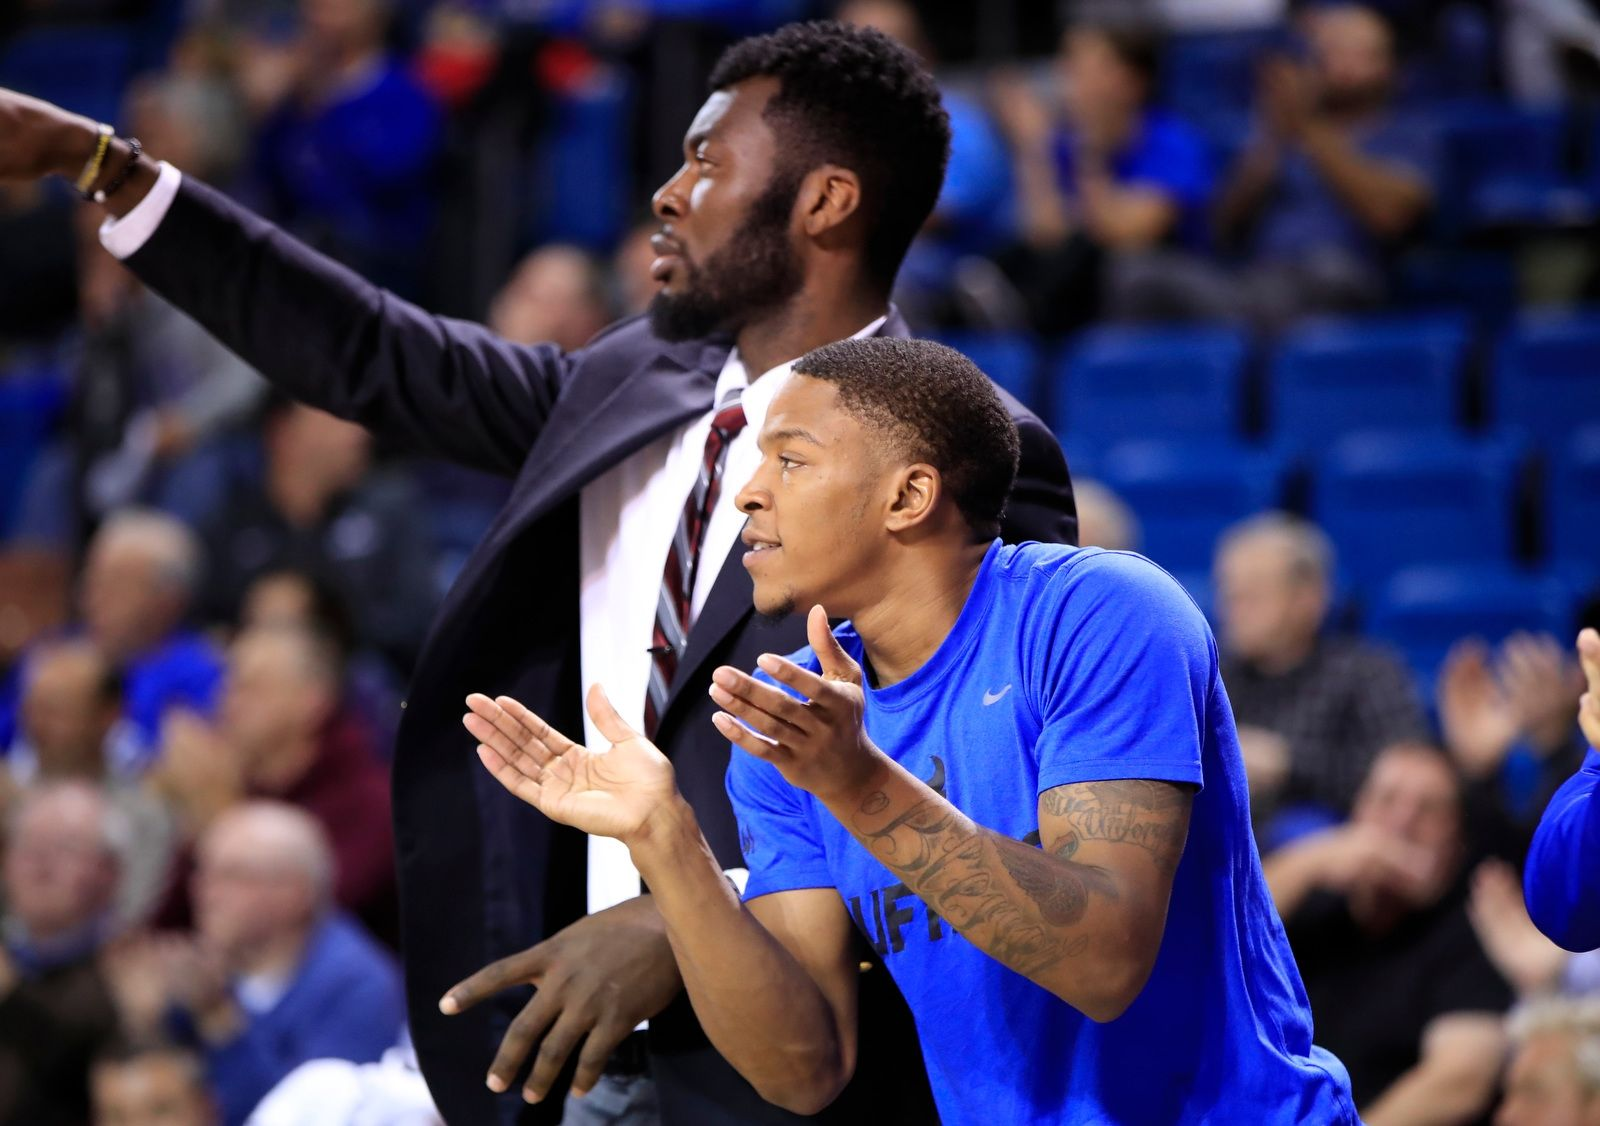 University at Buffalo guard Wes Clark cheers on his team from the bench against Jacksonville State during second half action.